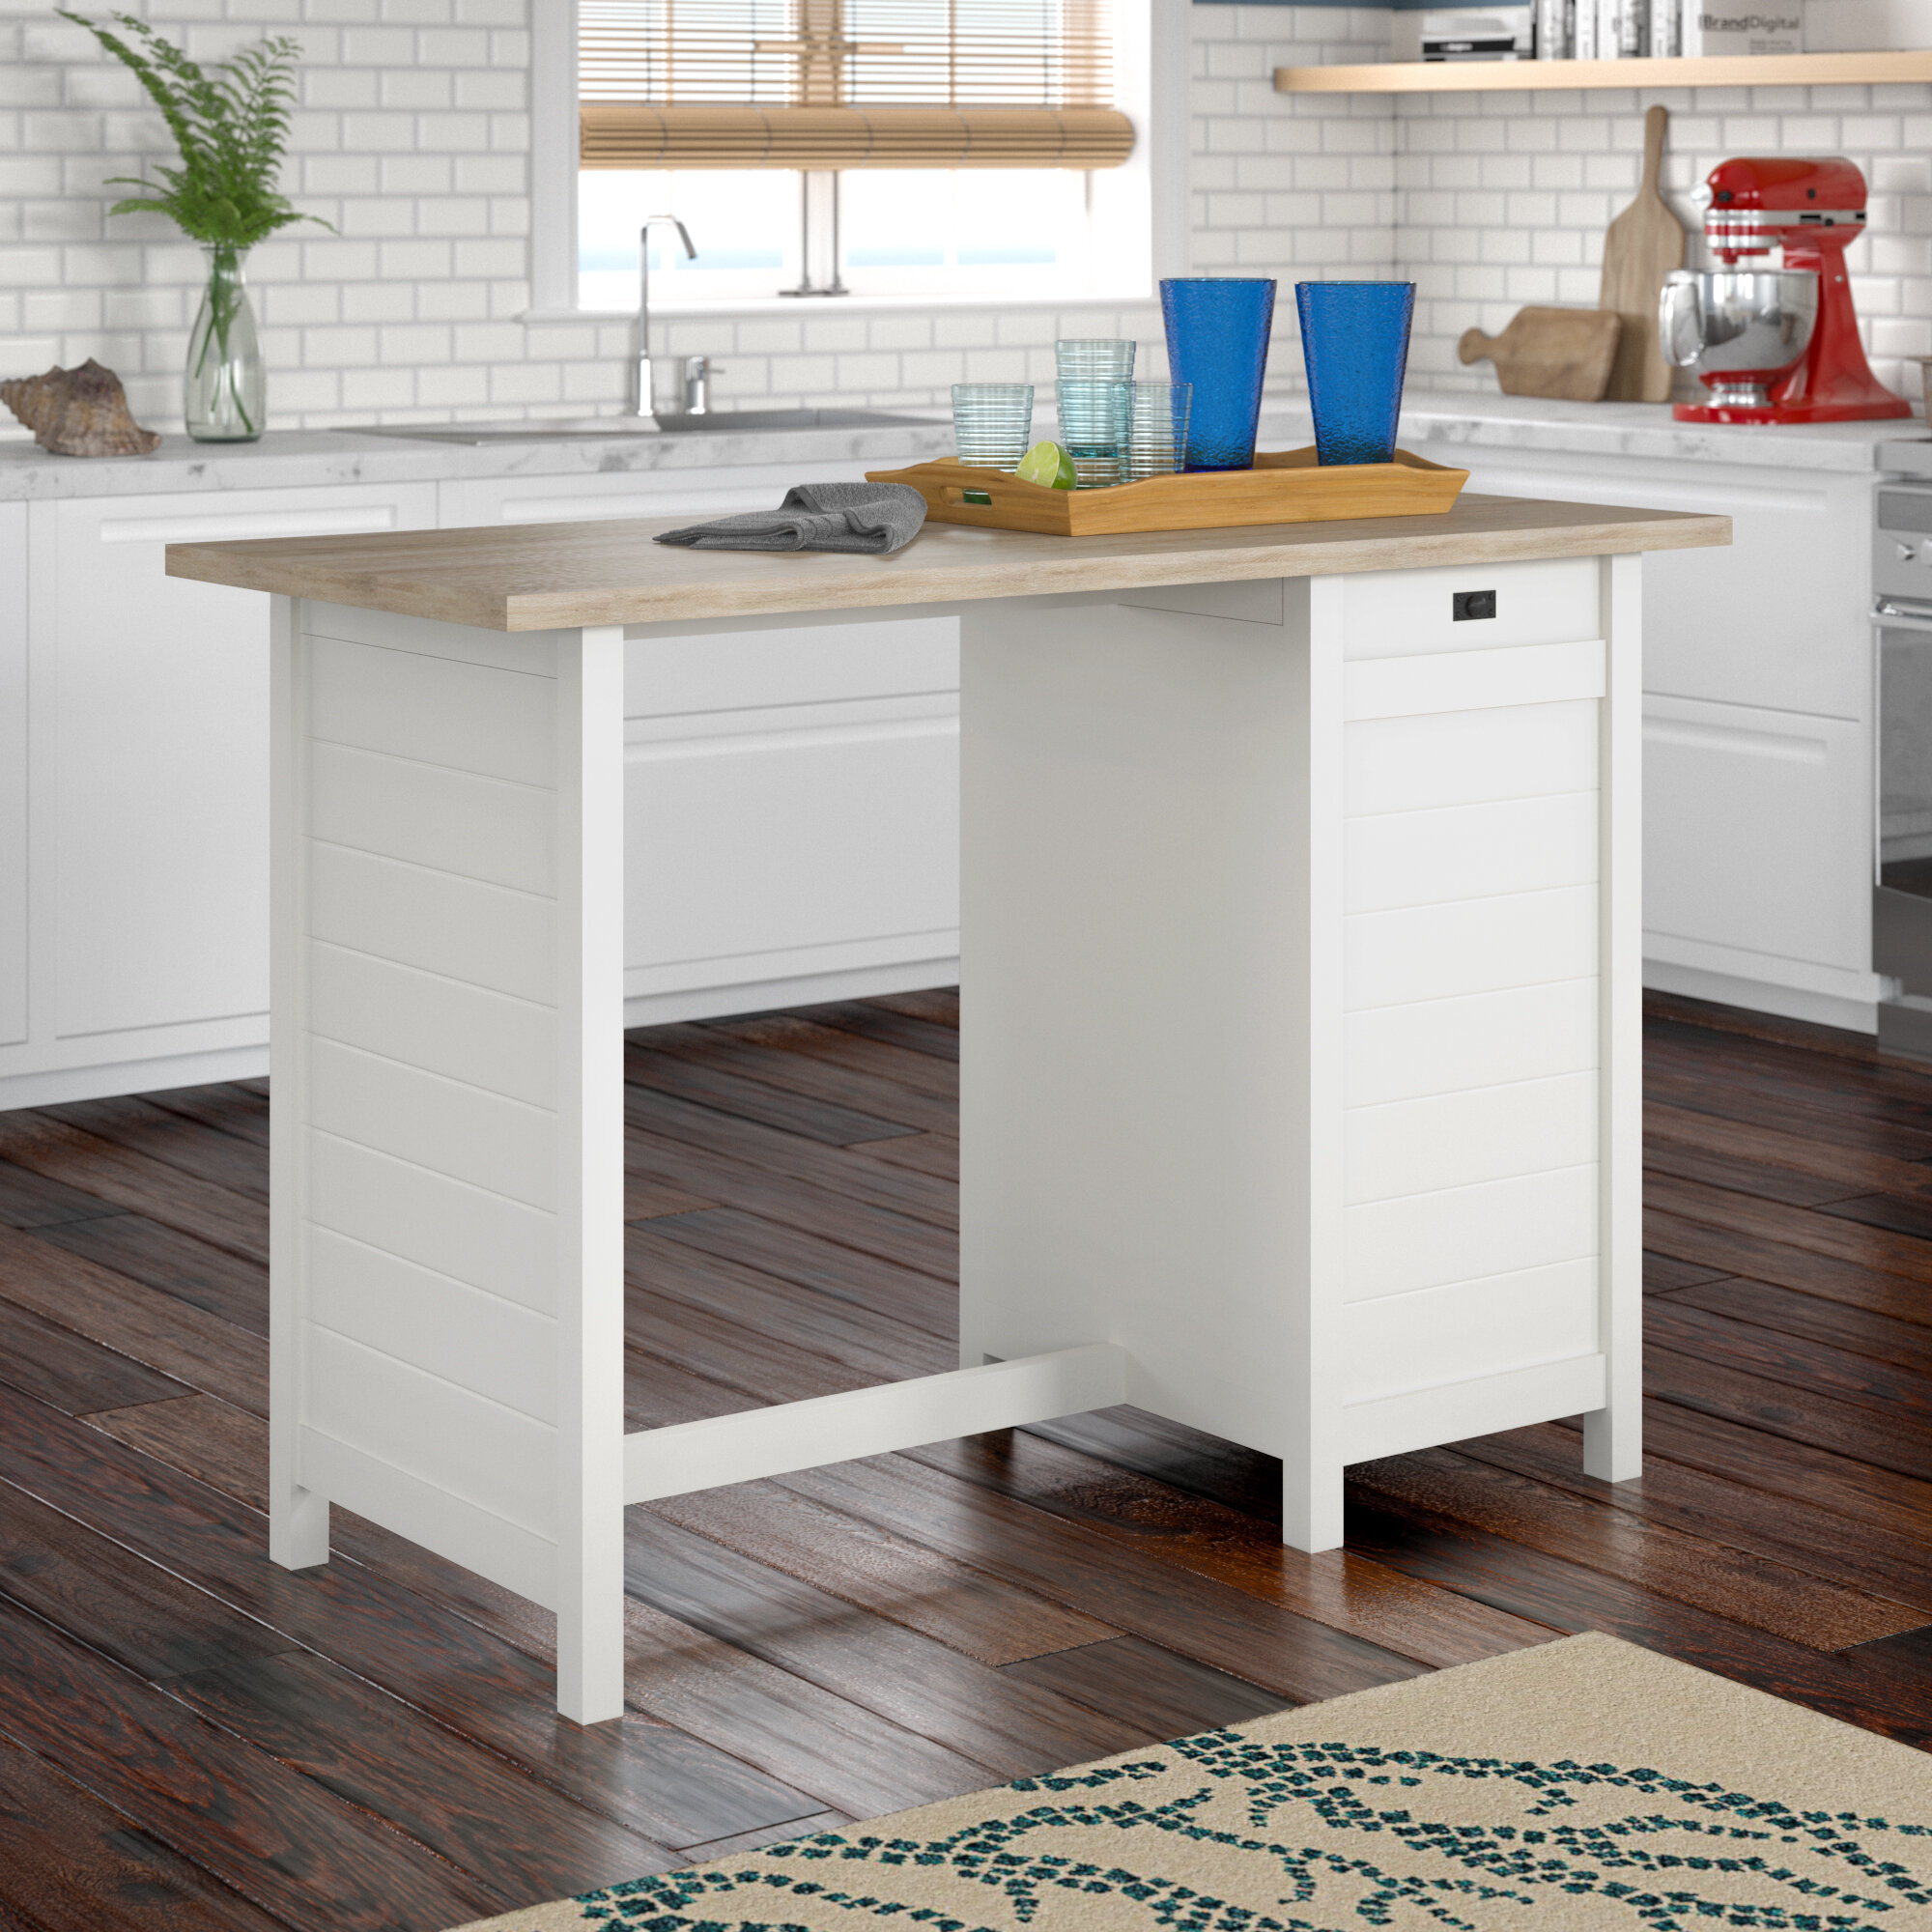 Beachcrest Home Hampton Kitchen Island with Lintel Oak Top & Reviews on kitchen party gifts, kitchen silver ideas, kitchen bathroom ideas, kitchen hardware ideas, kitchen wood ideas, kitchen camera ideas, kitchen unique ideas, kitchen furniture ideas, kitchen decorating ideas, unique sewing craft ideas, kitchen office ideas, kitchen wine ideas, kitchen gifts for lovers, kitchen hat ideas, kitchen anniversary ideas, kitchen cooking ideas, kitchen tree ideas, kitchen favor ideas, kitchen fruit ideas, kitchen photography ideas,